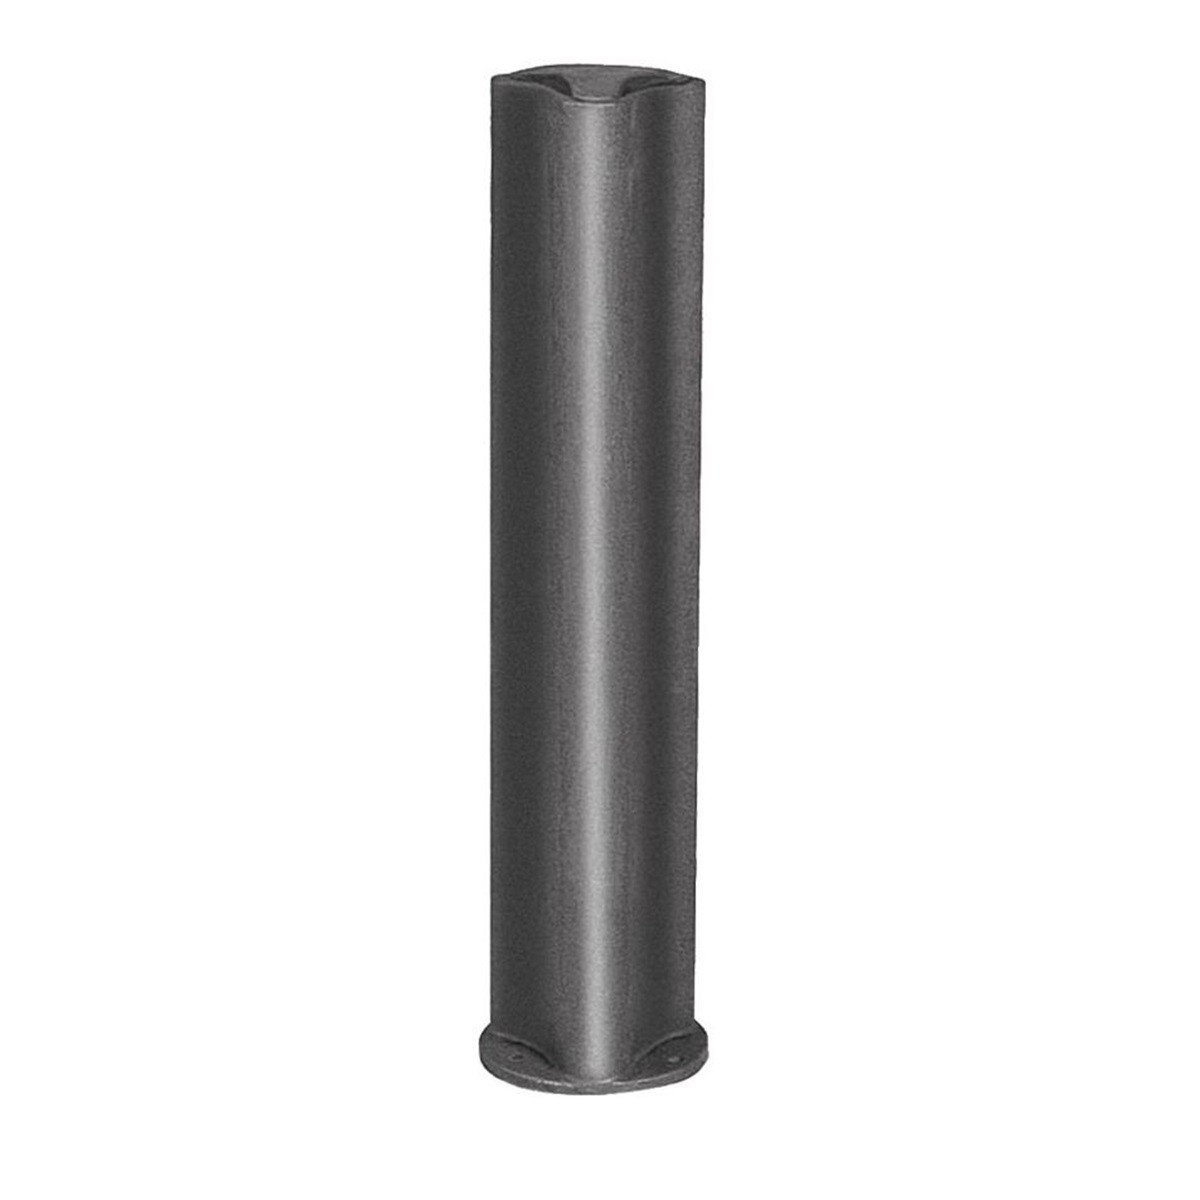 Salt bollard able to tighten in casting - C-507G